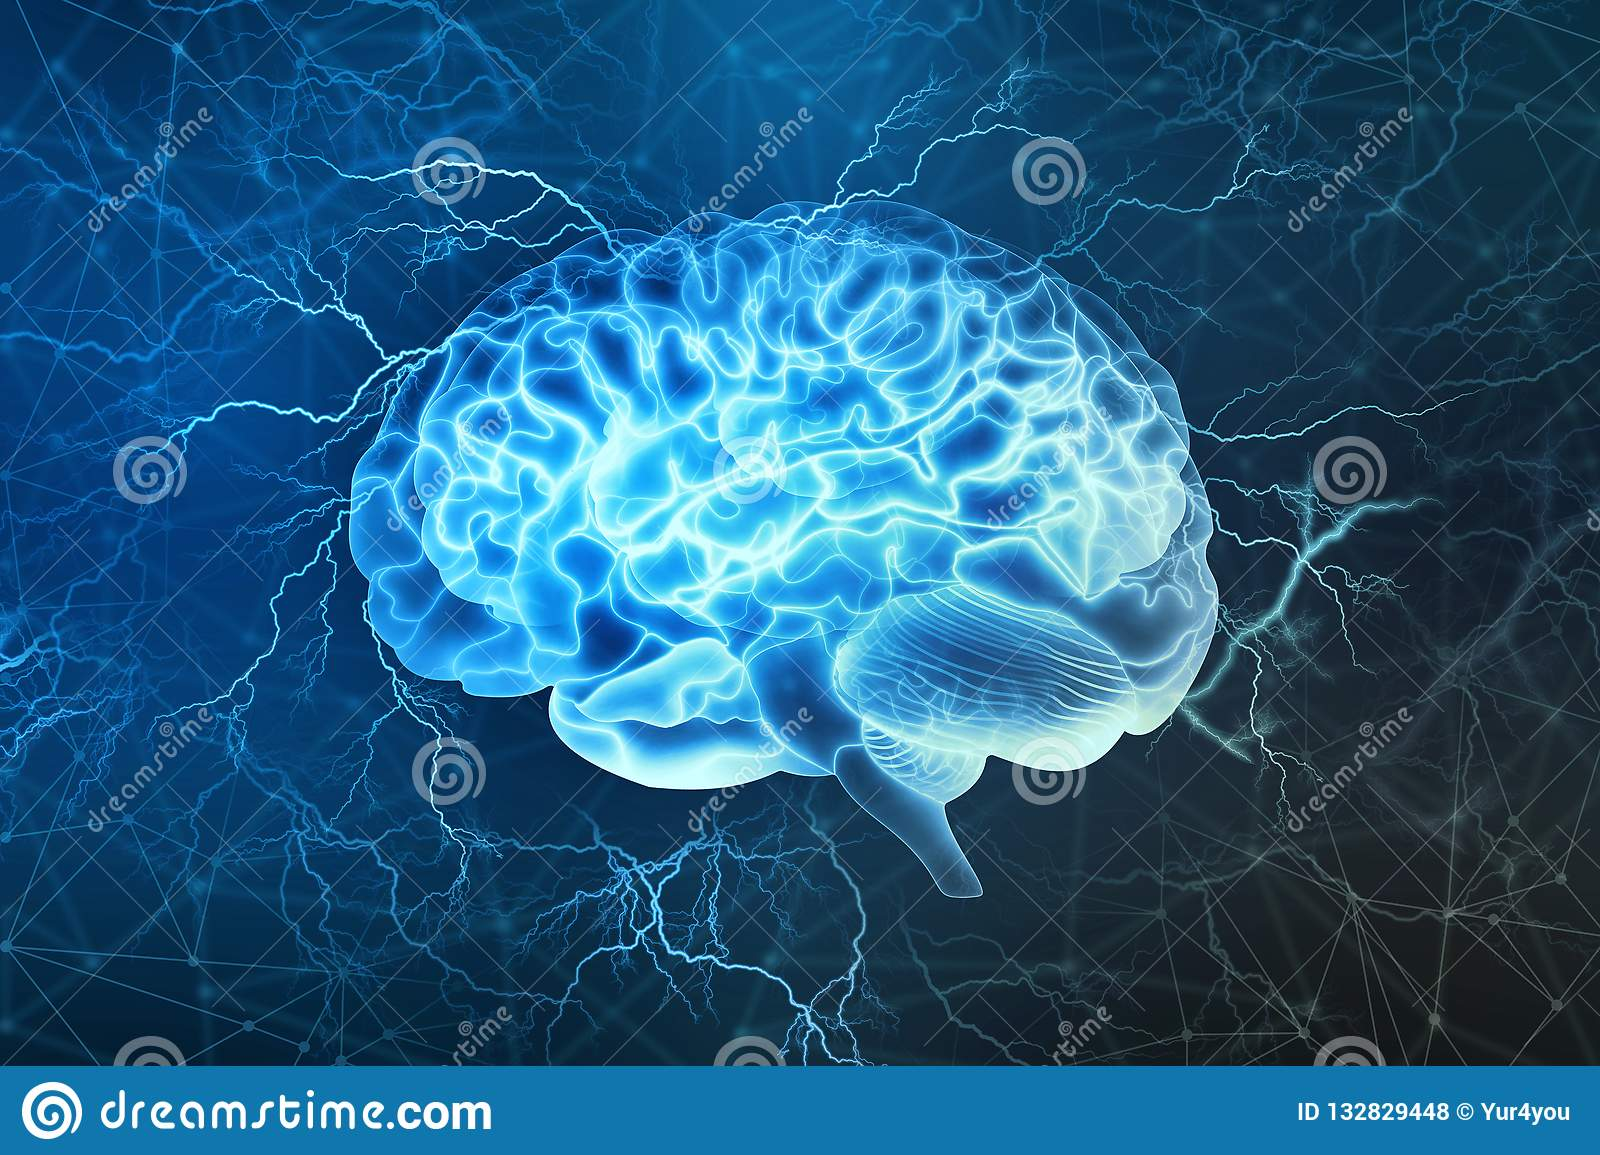 Electrical activity of the human brain